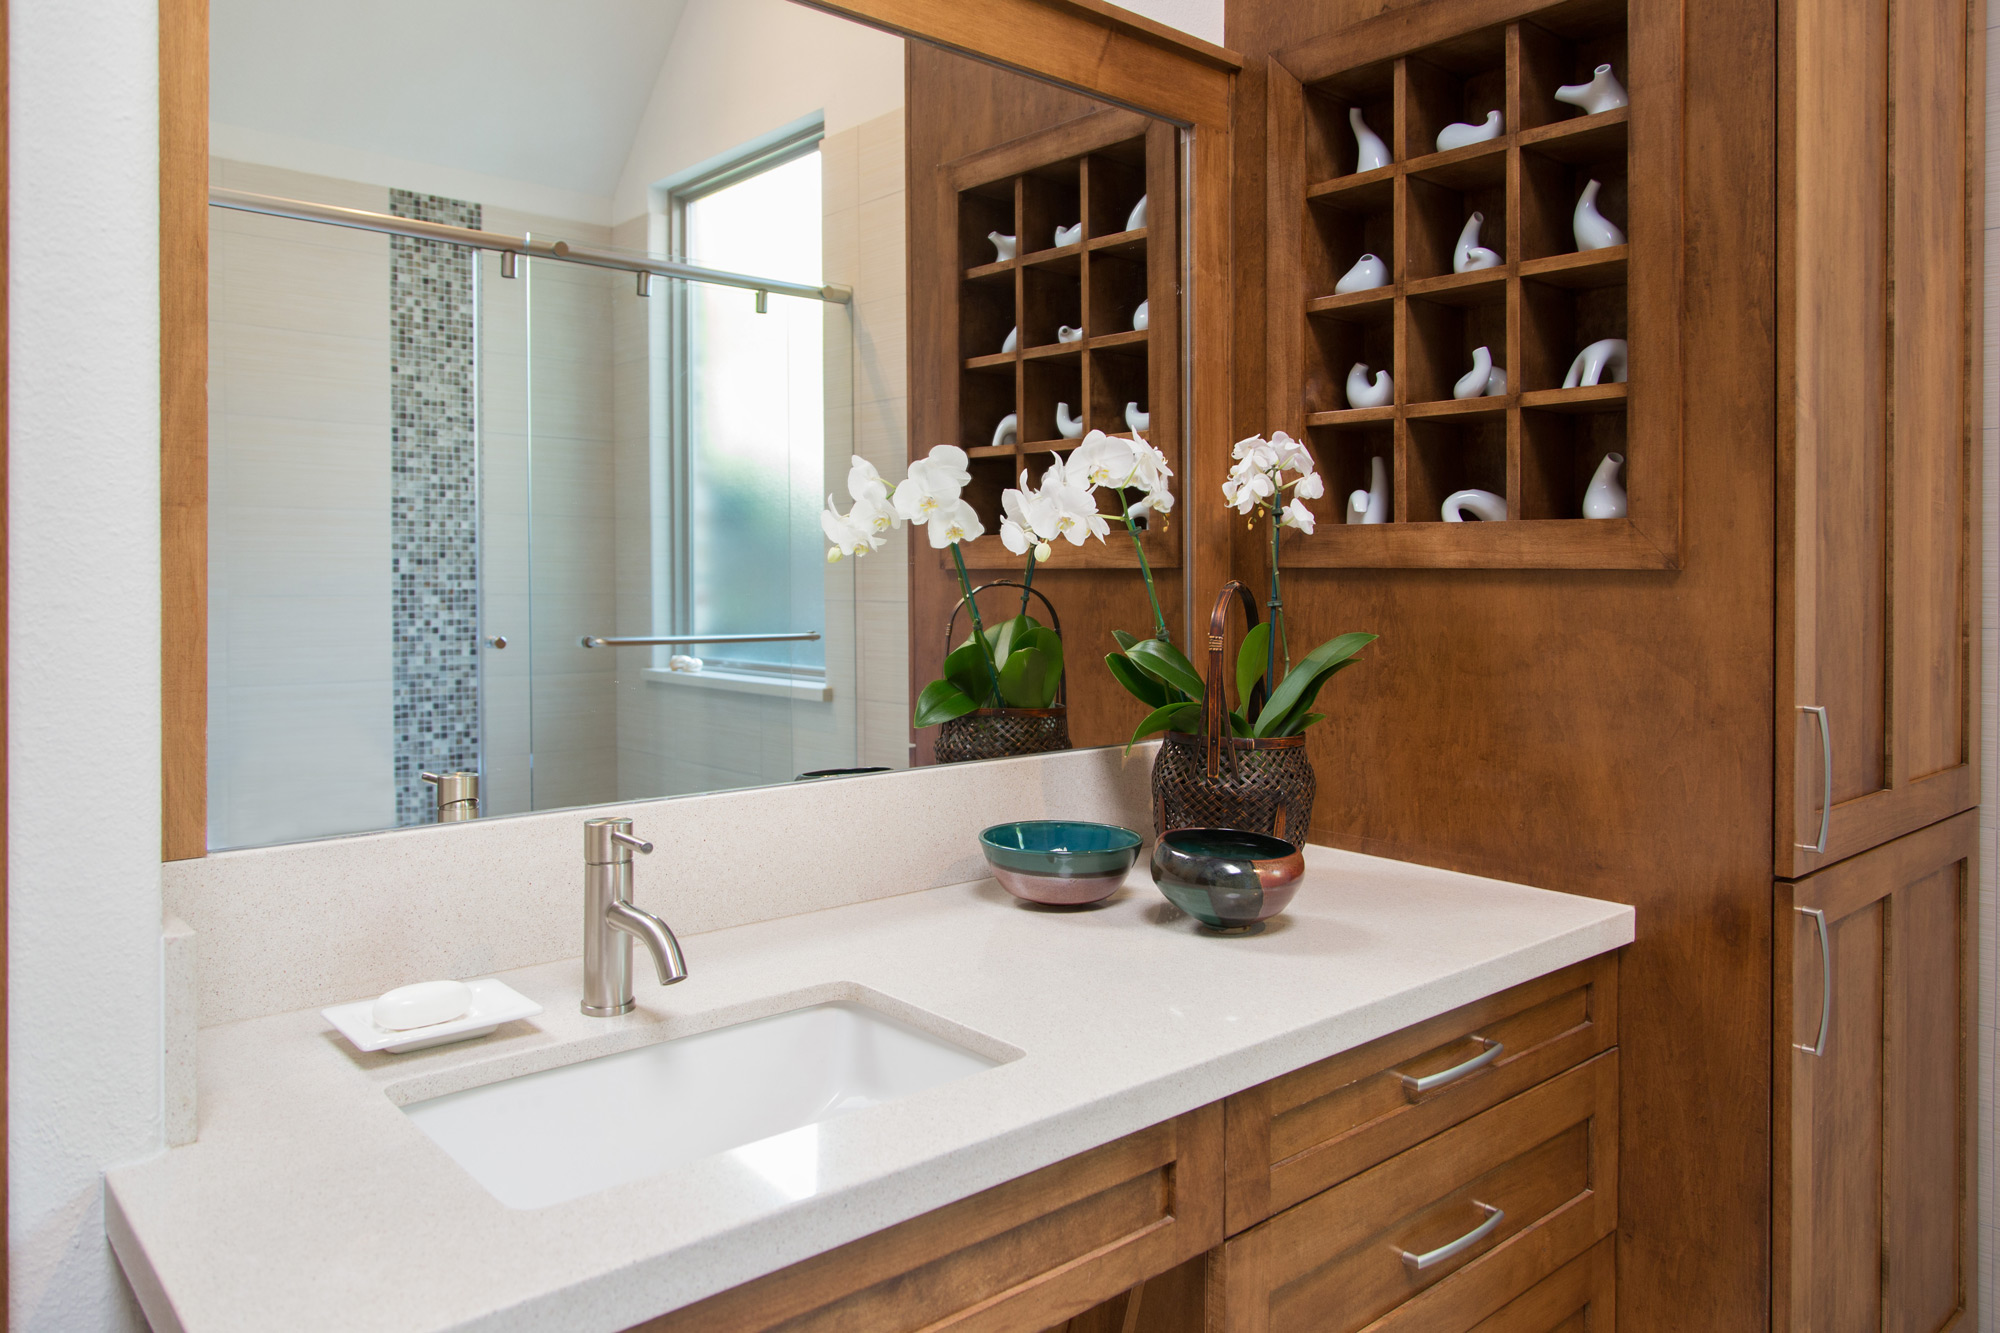 Bathroom remodel featuring: universal design,accessible bathroom,curbless shower, linear drain, accessibility, and much more! | Interior Designer: Carla Aston / Photographer: Tori Aston